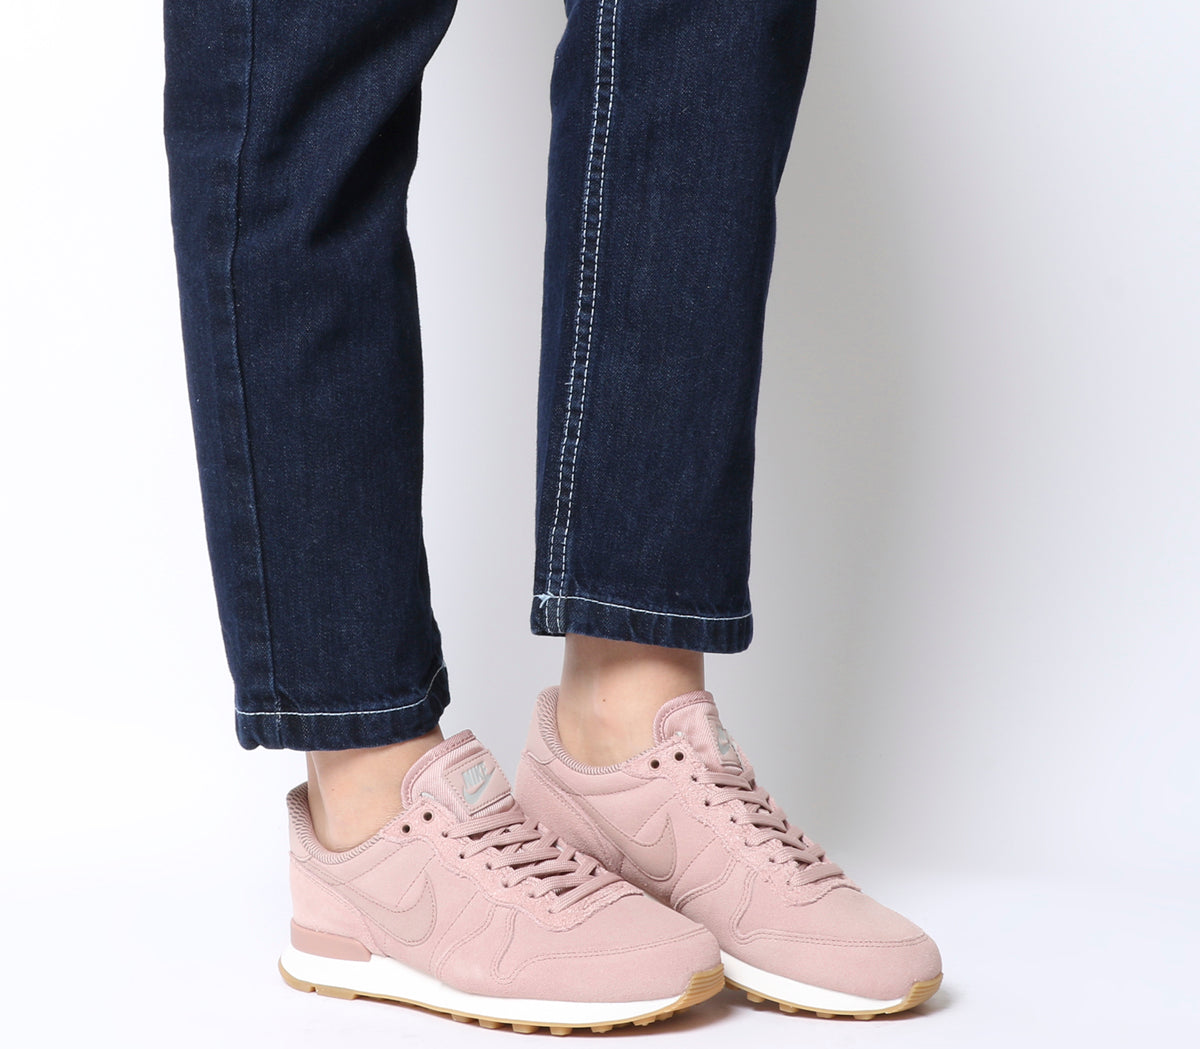 hot sale online 895e0 42a16 Womens Nike Internationalist Trainers Particle Pink – OFFCUTS SHOES by  OFFICE